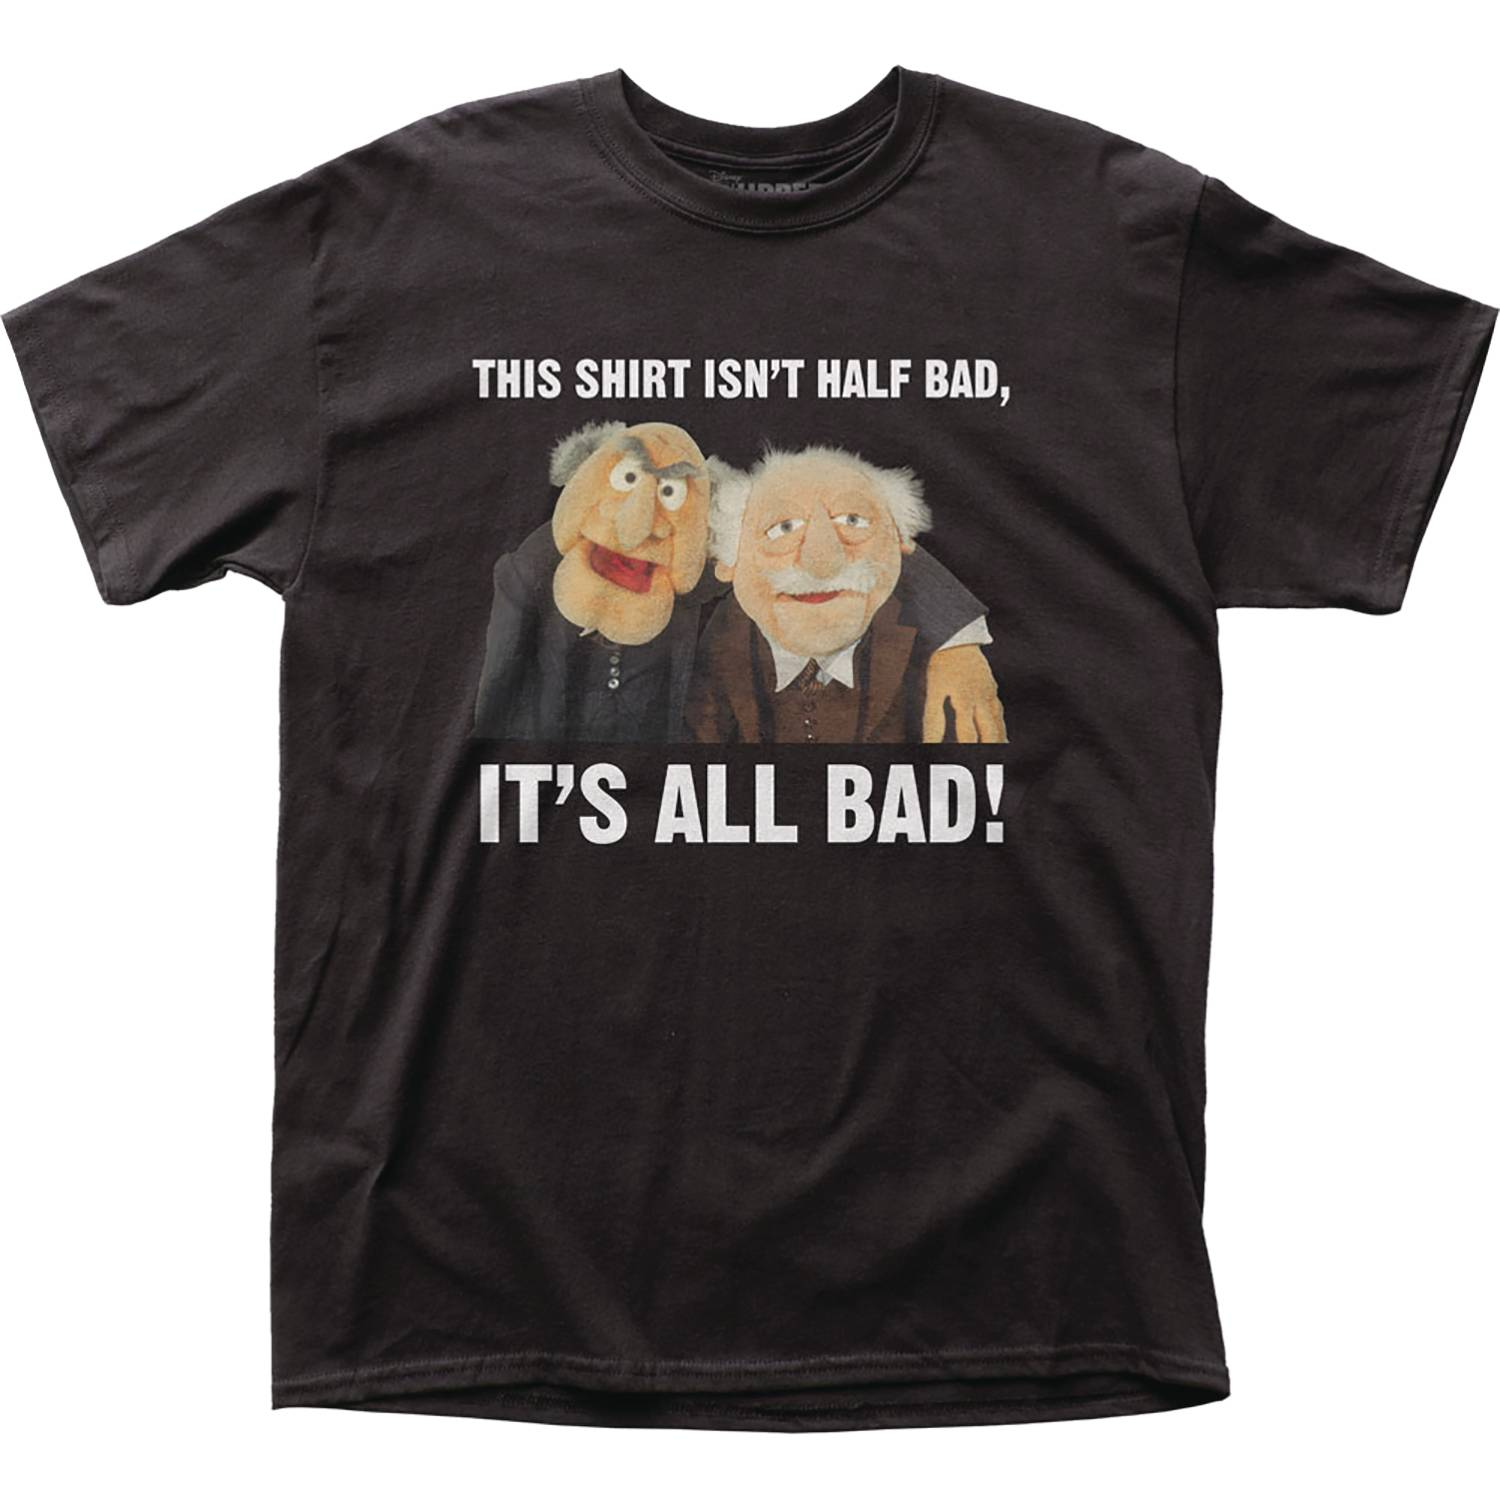 THE MUPPETS THIS SHIRT IS ALL BAD T/S LG